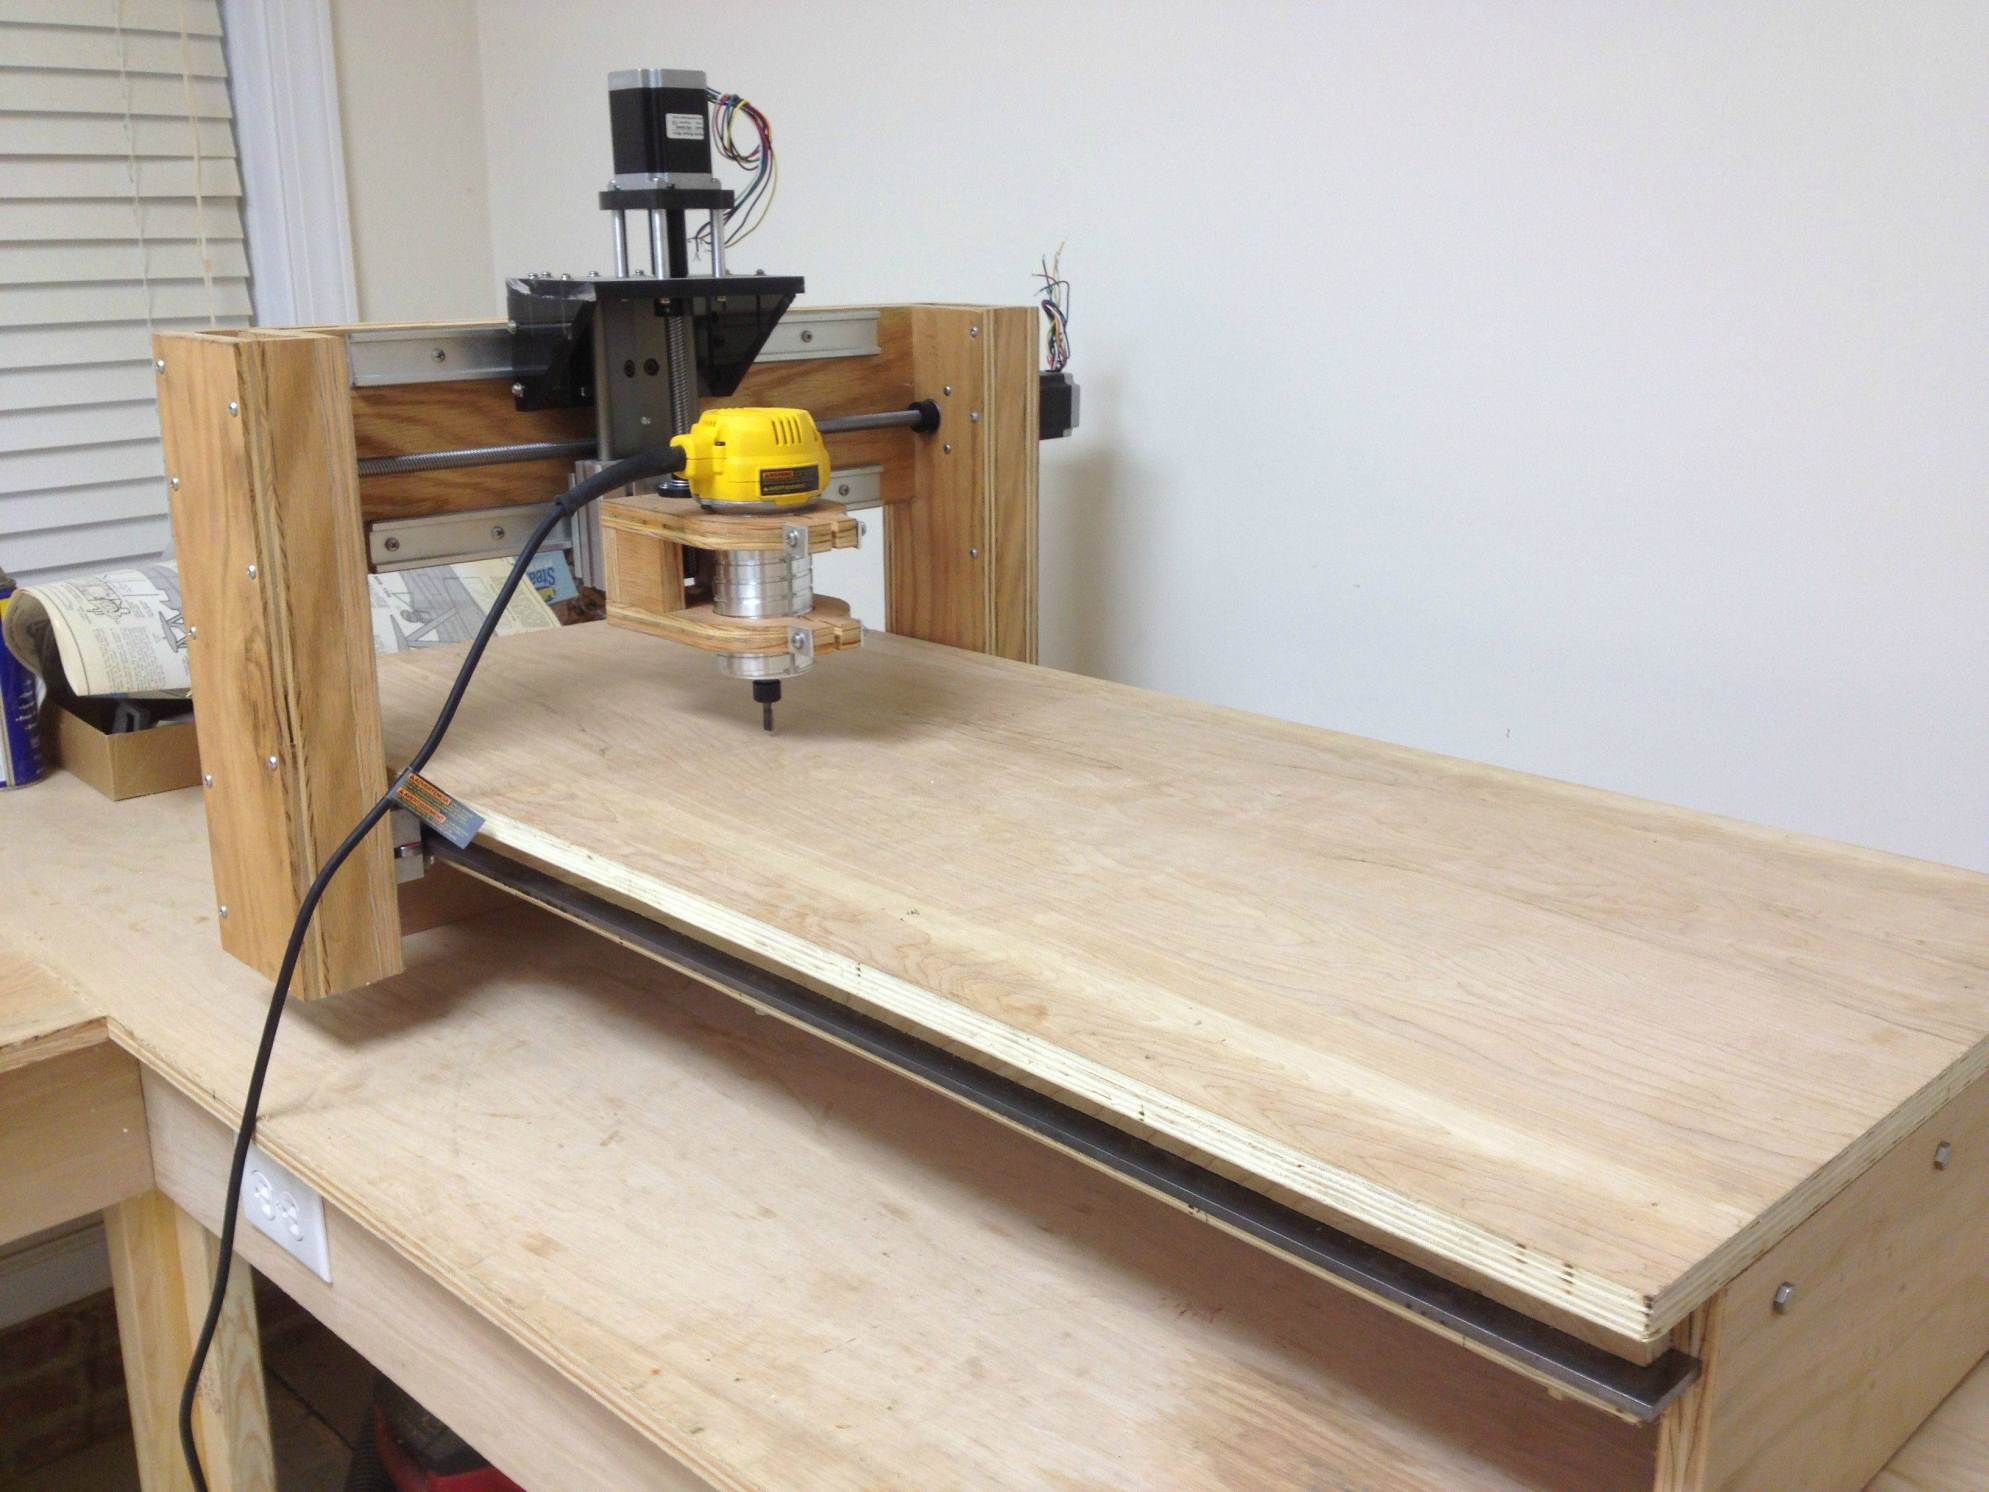 Building A Wood Cnc Router From Scratch Tools Here39s Some Switch Symbols Switches Are Anything That Controls An Home Made Plus